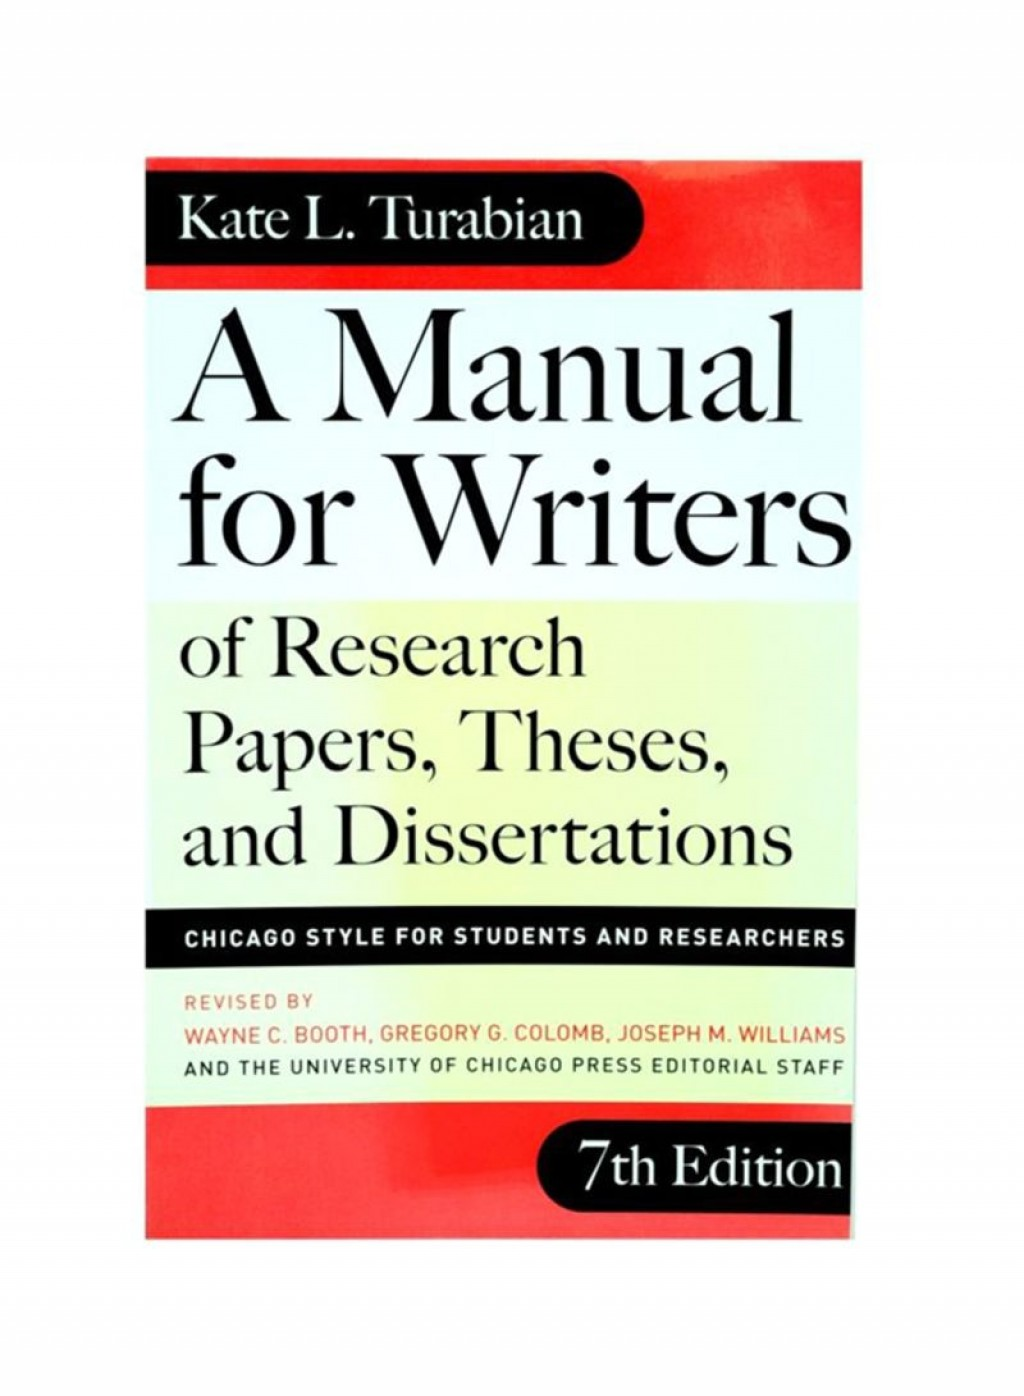 021 Research Paper N21270079a 1 Manual For Writers Of Papers Theses And Magnificent Dissertations A Amazon 9th Edition 8th 13 Large